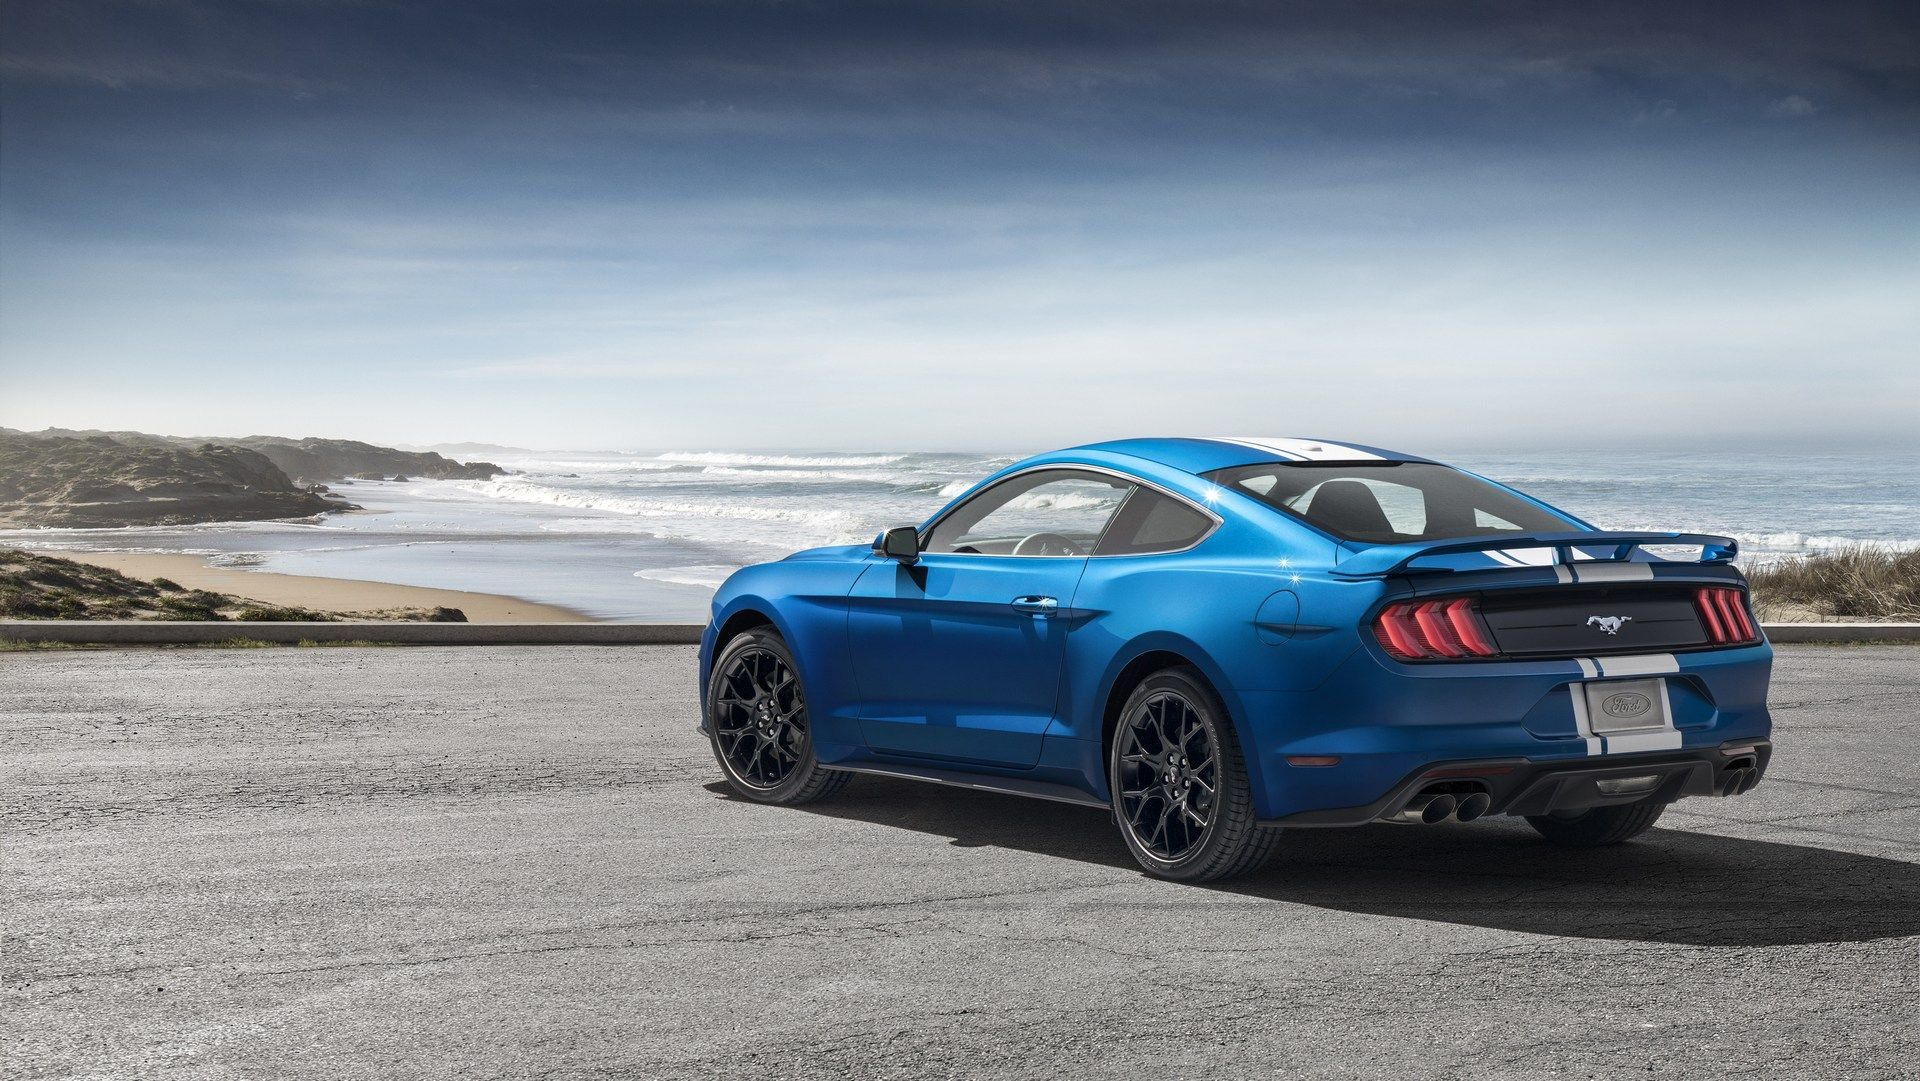 2019 Ford Mustang Ecoboost Gets Active Valve Exhaust This Is What It Sounds Like Mustang Ecoboost Ford Mustang Ecoboost Ford Mustang